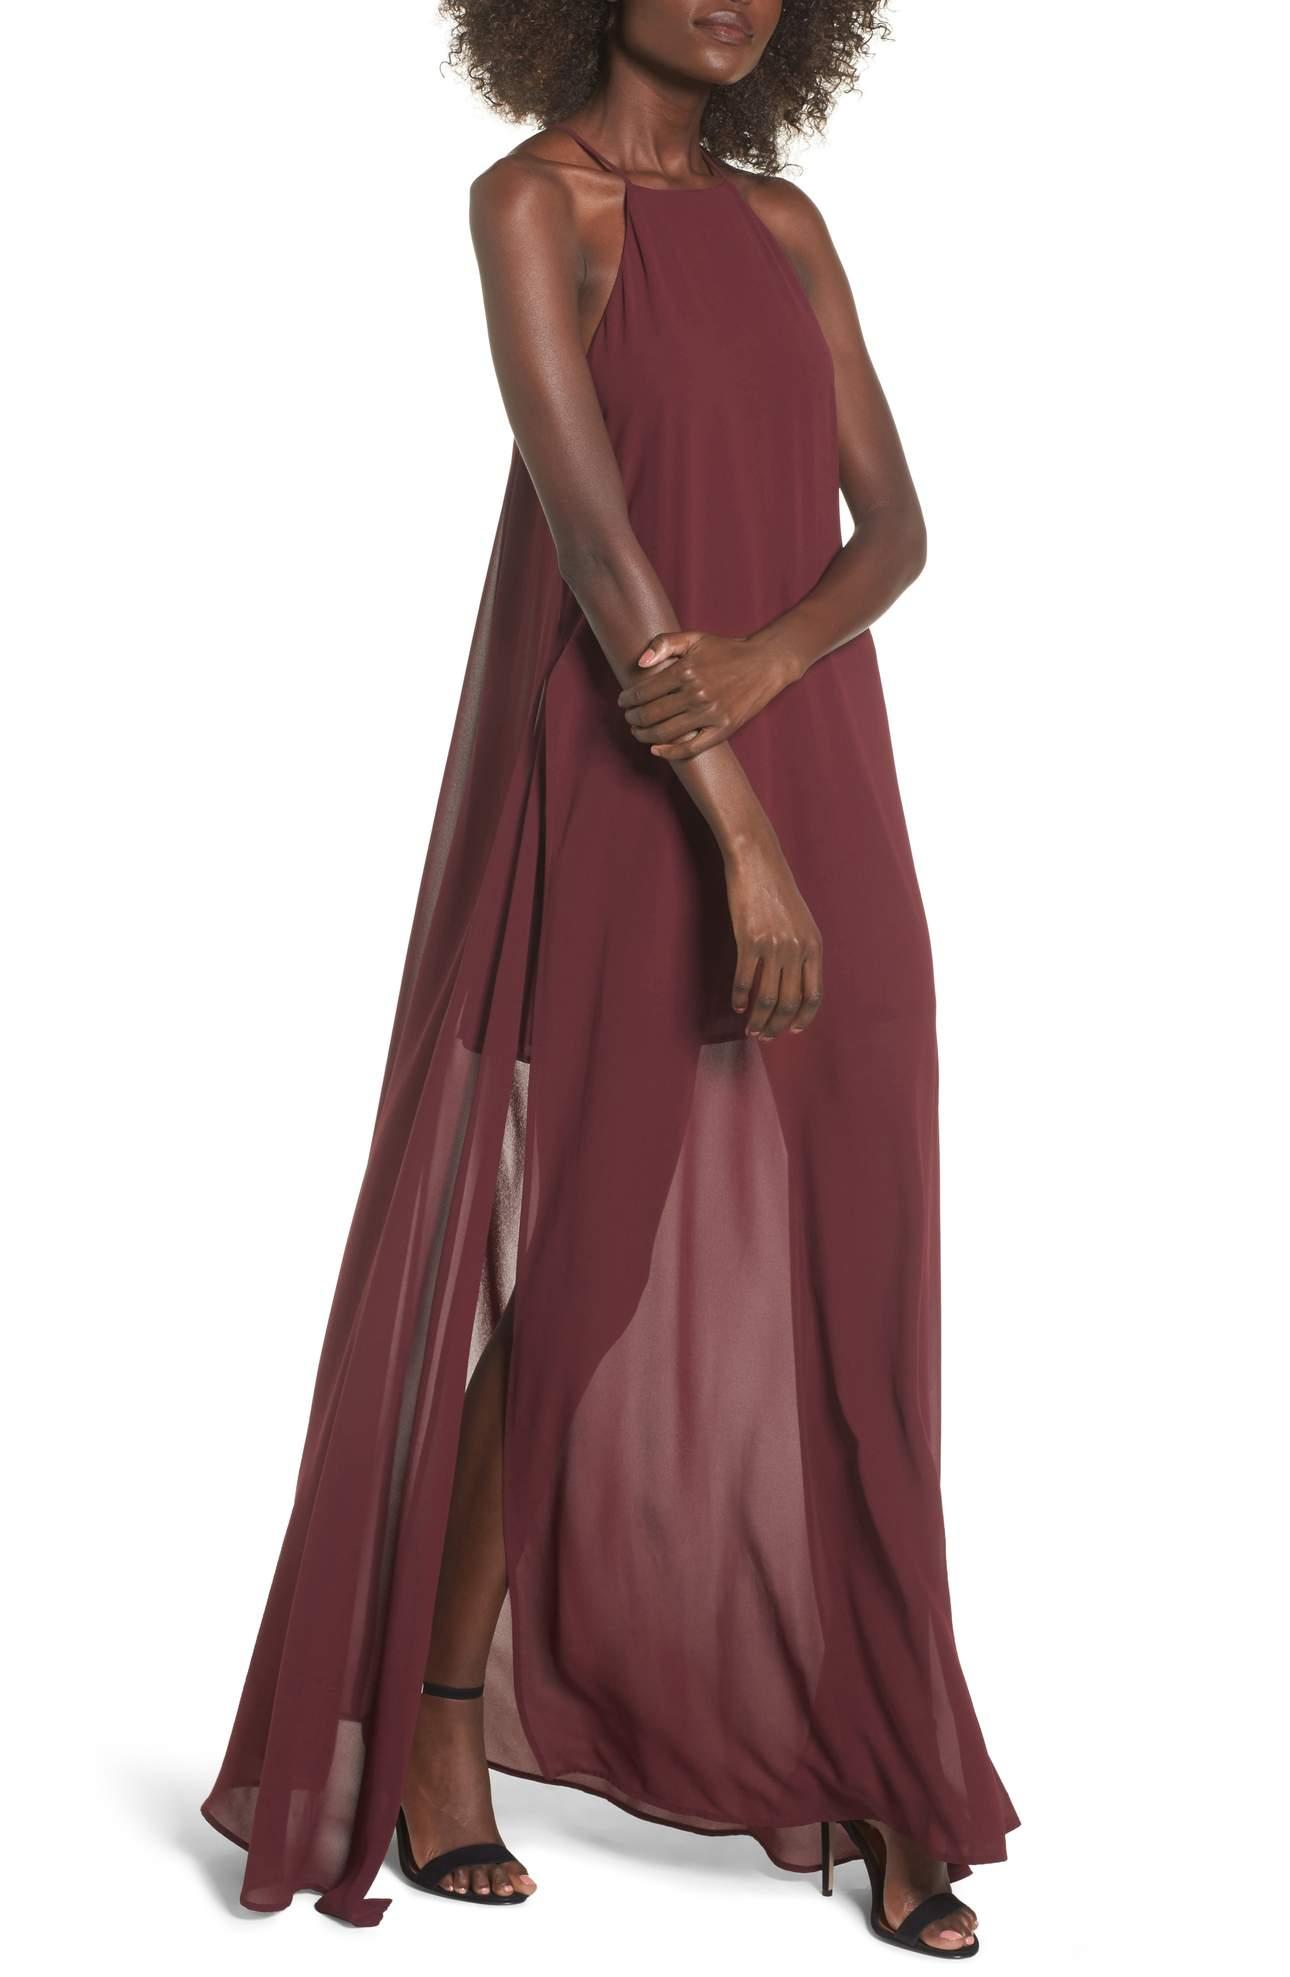 <p>Bronte Maxi Dress - $184-$198. Get all glammed up for NYE with this long/sheer maxi.{&amp;nbsp;} The color is on-point! (Image: Nordstrom){&amp;nbsp;}</p><p></p>